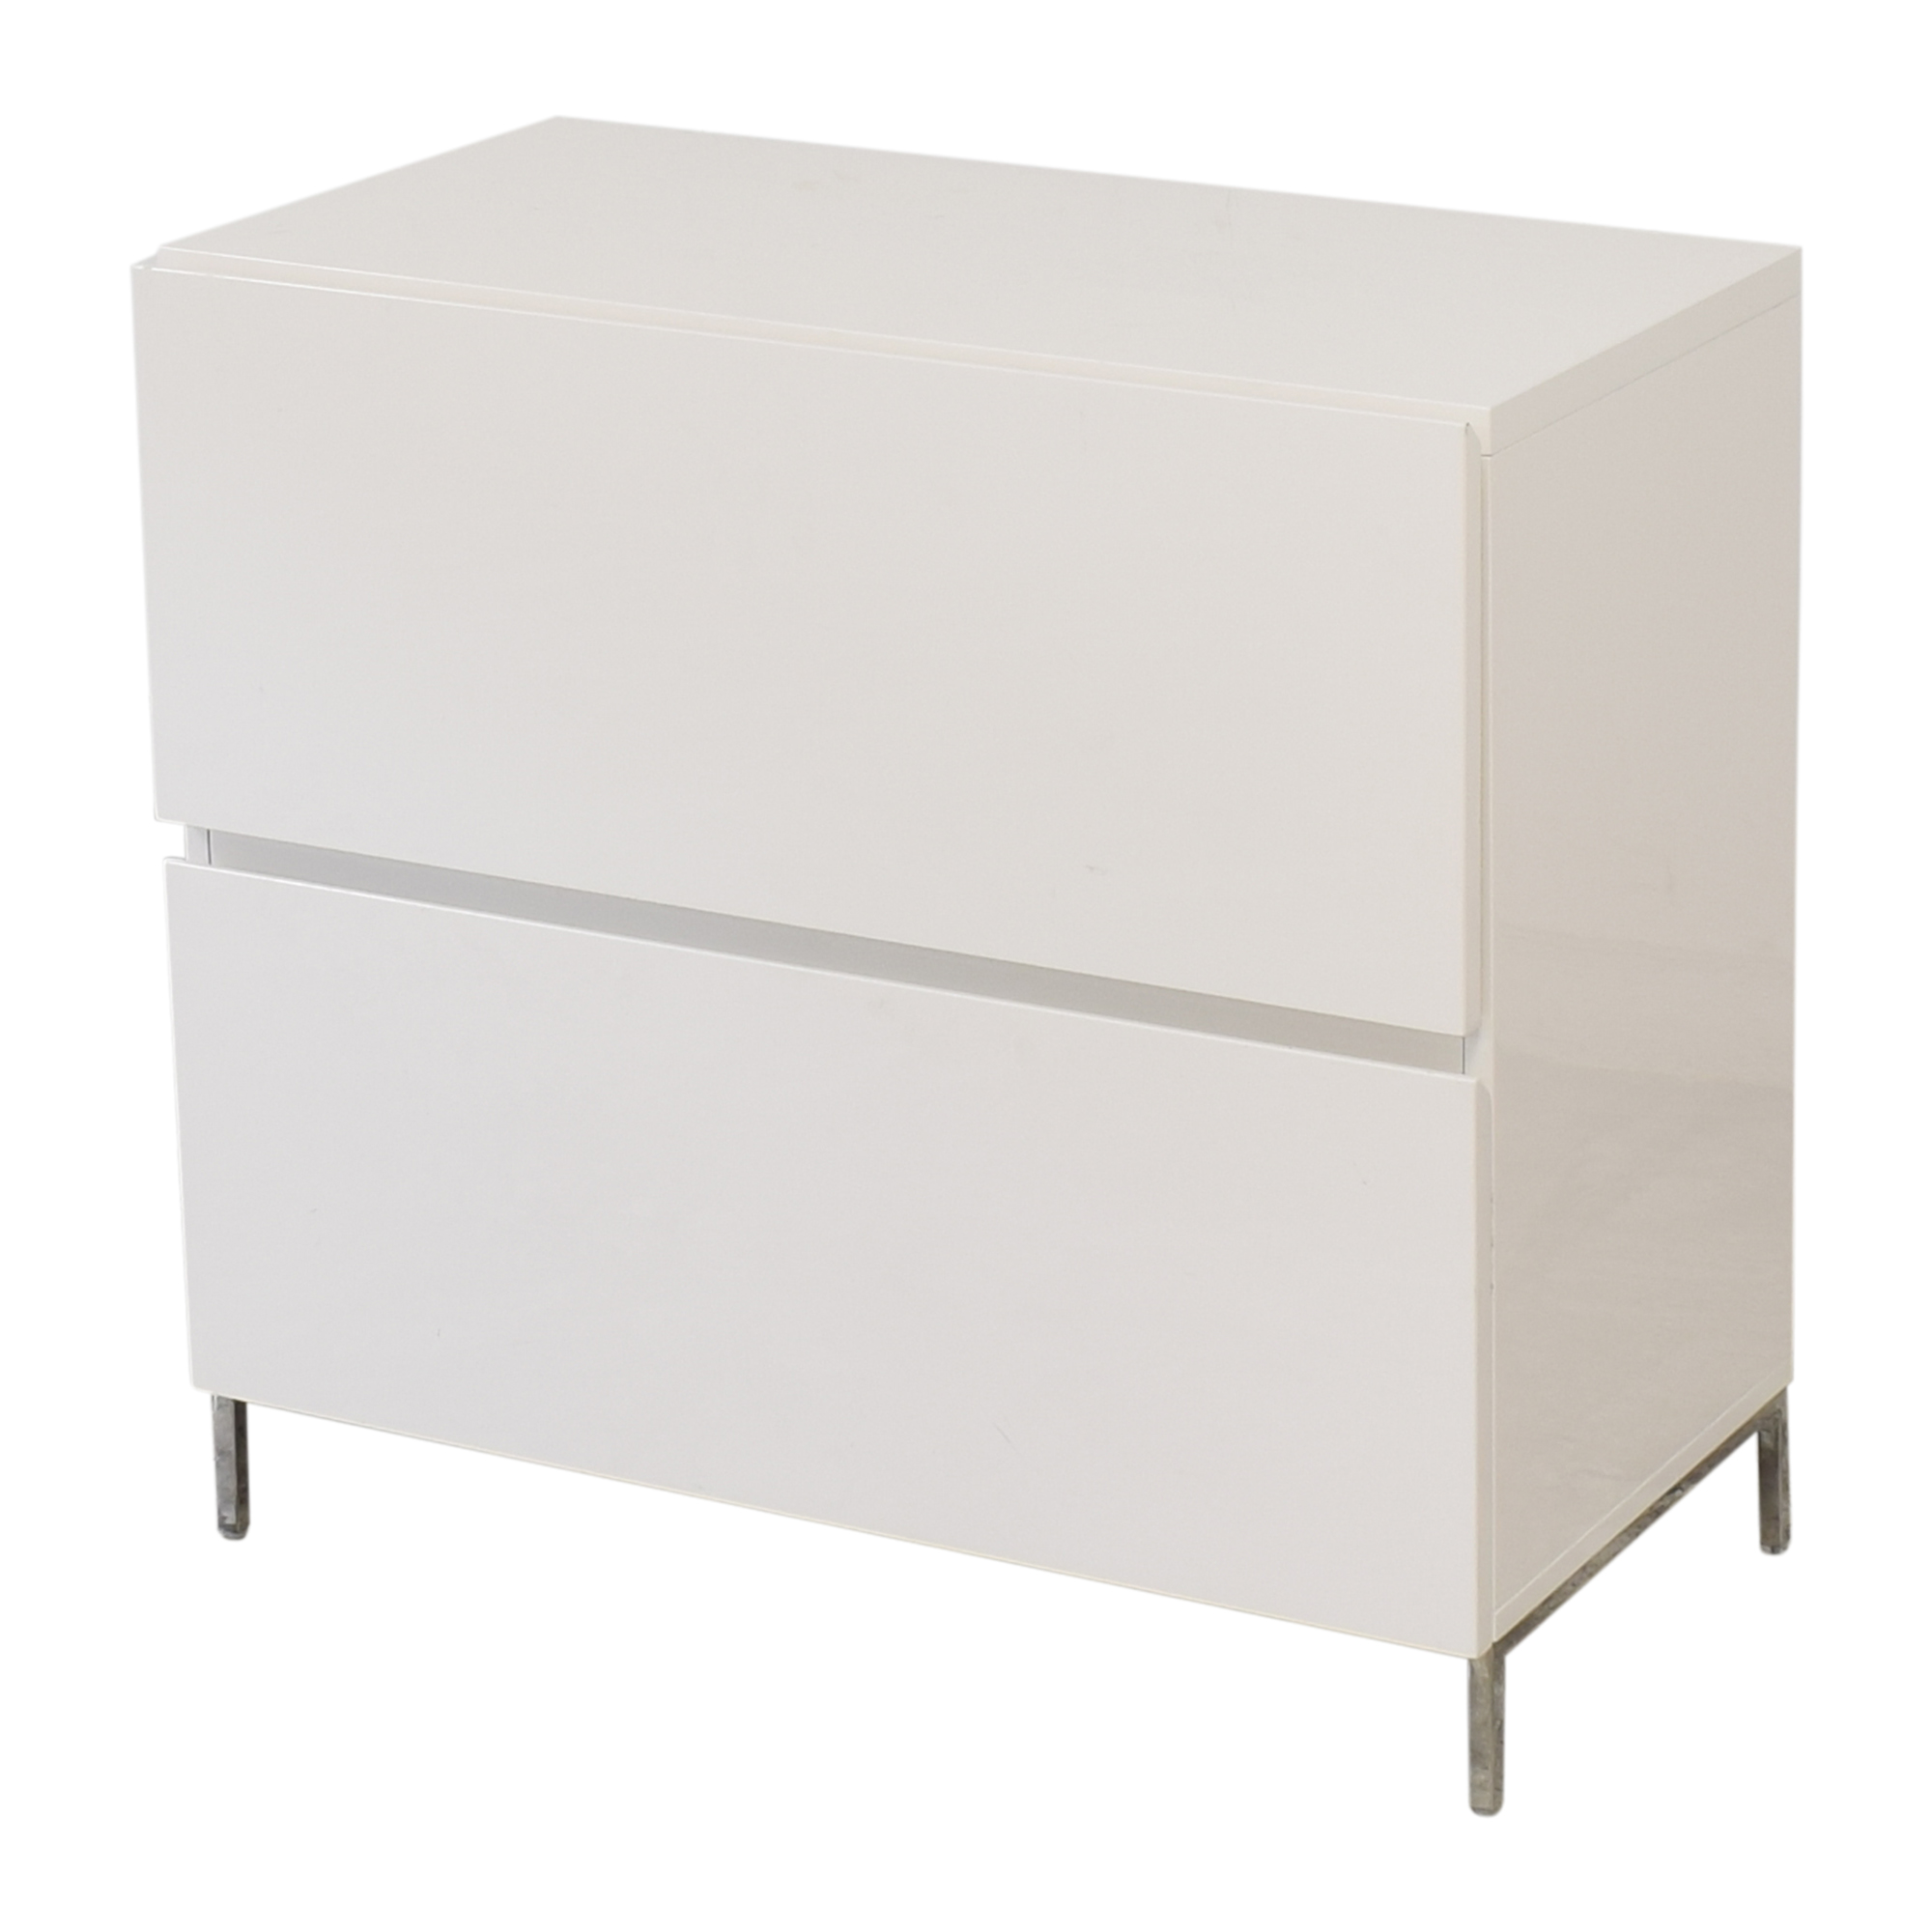 buy West Elm Lacquer Storage Modular Lateral File Cabinet West Elm Storage